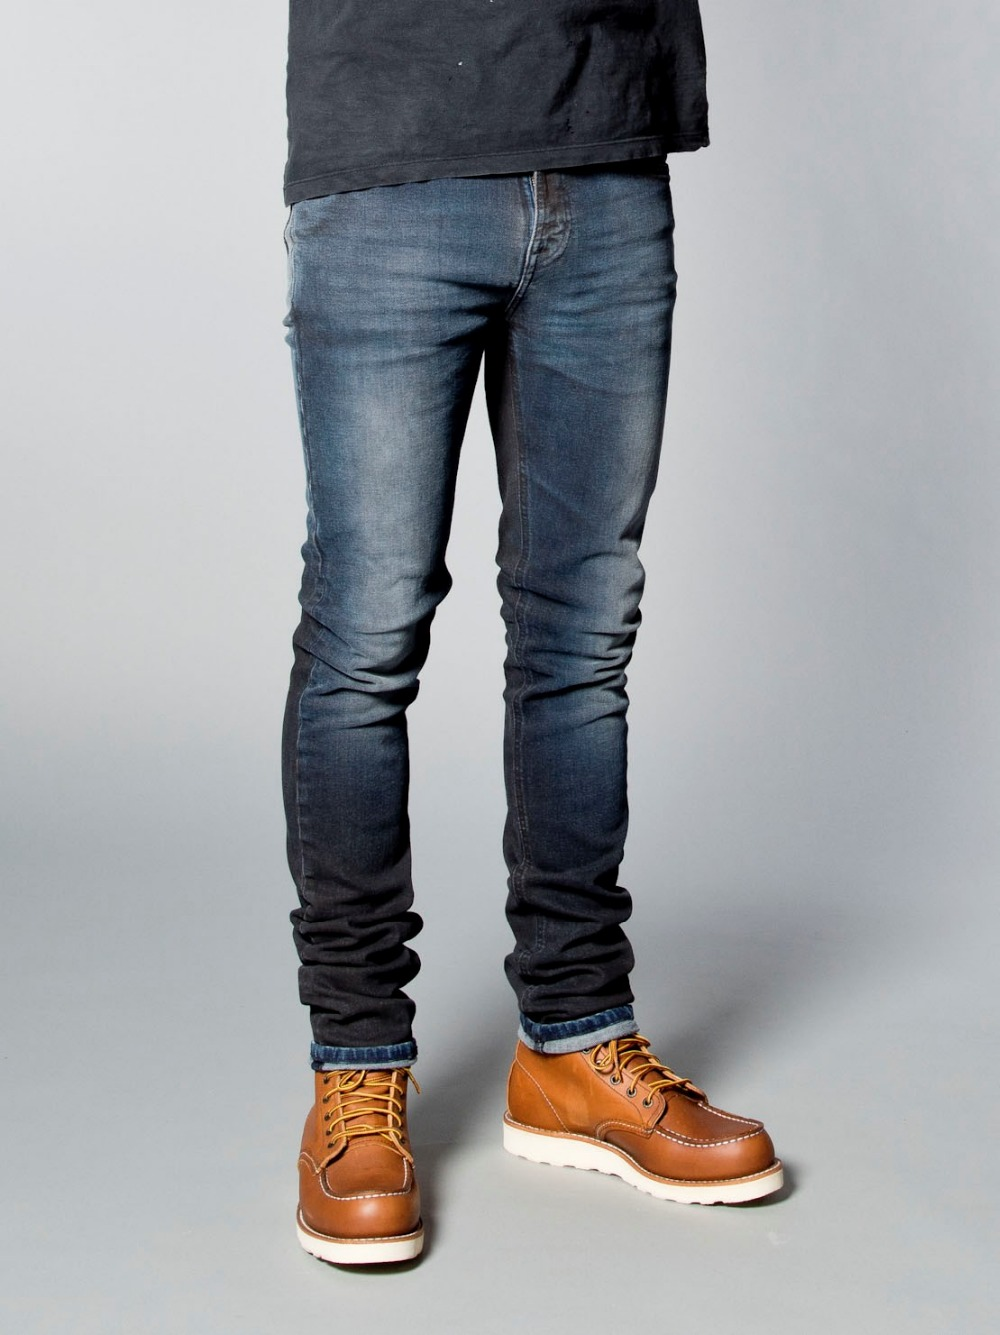 Jeans Pants Price In Bangladesh Man Denim Jeans Men Slim Jeans Men ...